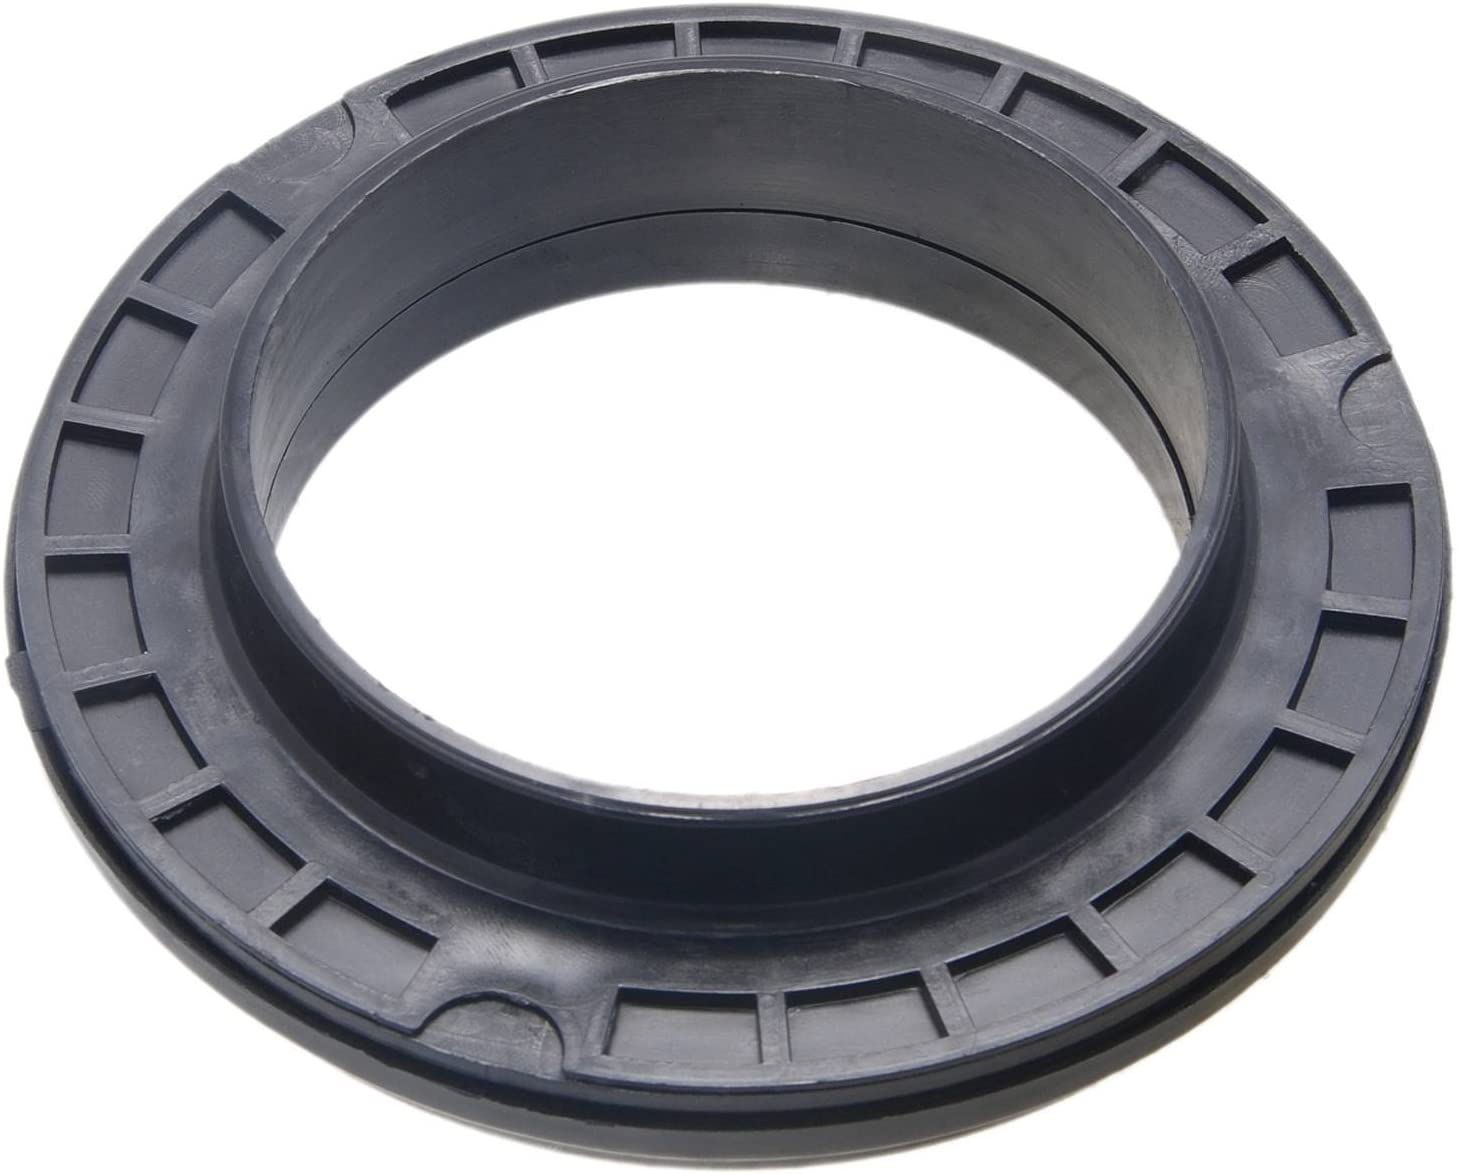 54325Ax000 - Front Shock Absorber Bearing For Nissan